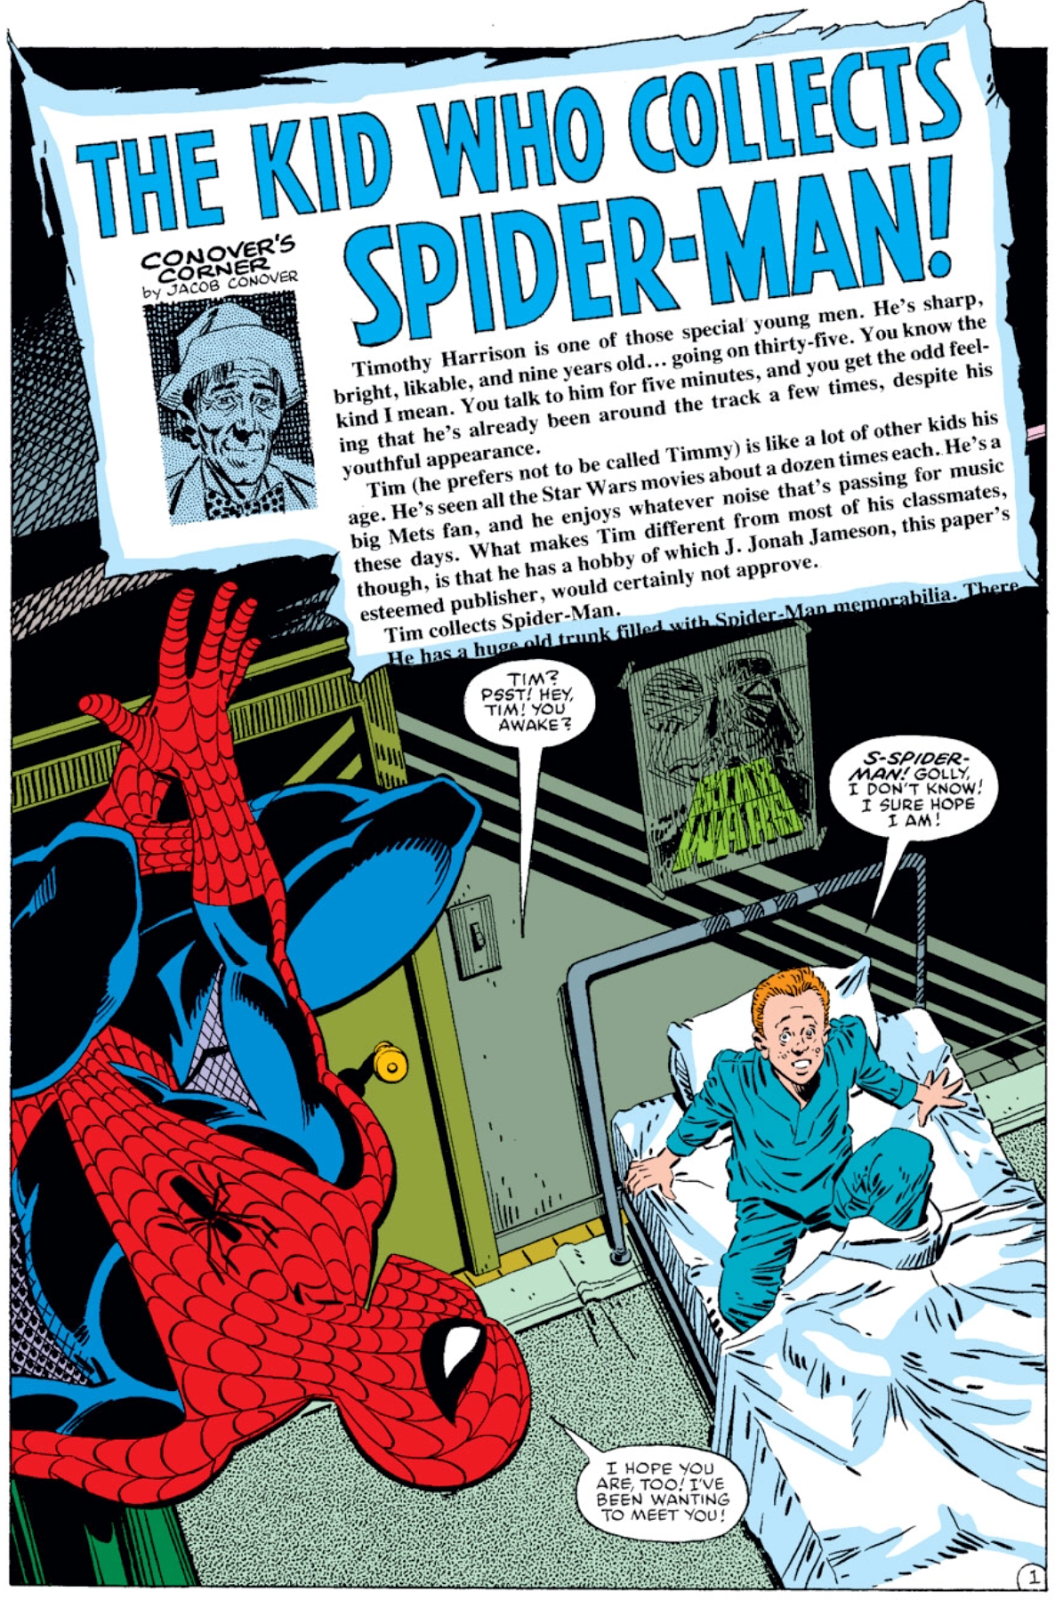 NOT A HOAX! NOT A DREAM!: THE AMAZING SPIDER-MAN #248